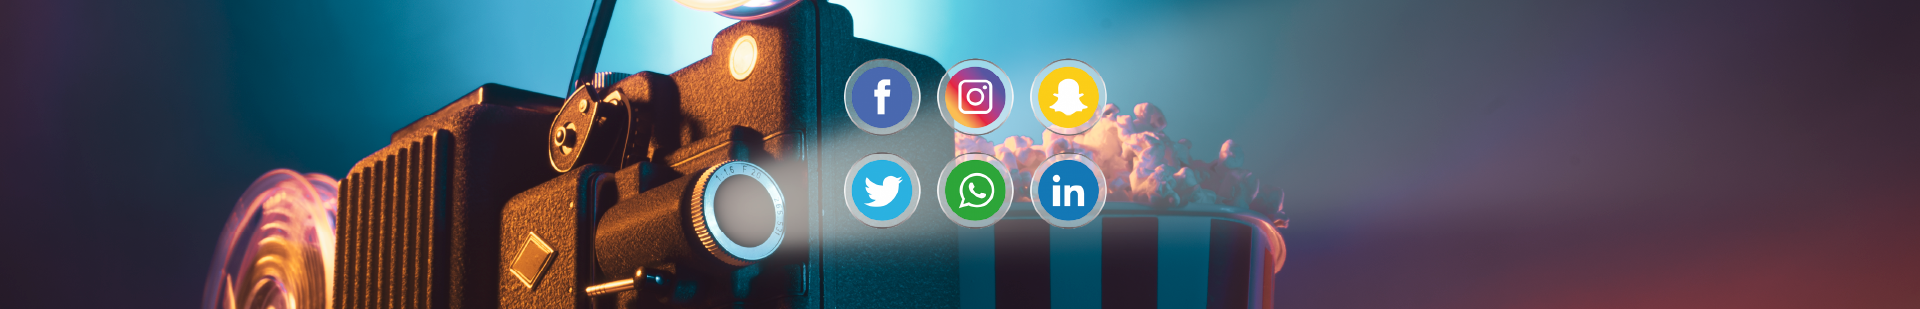 Flashbuzz Social Media Packages